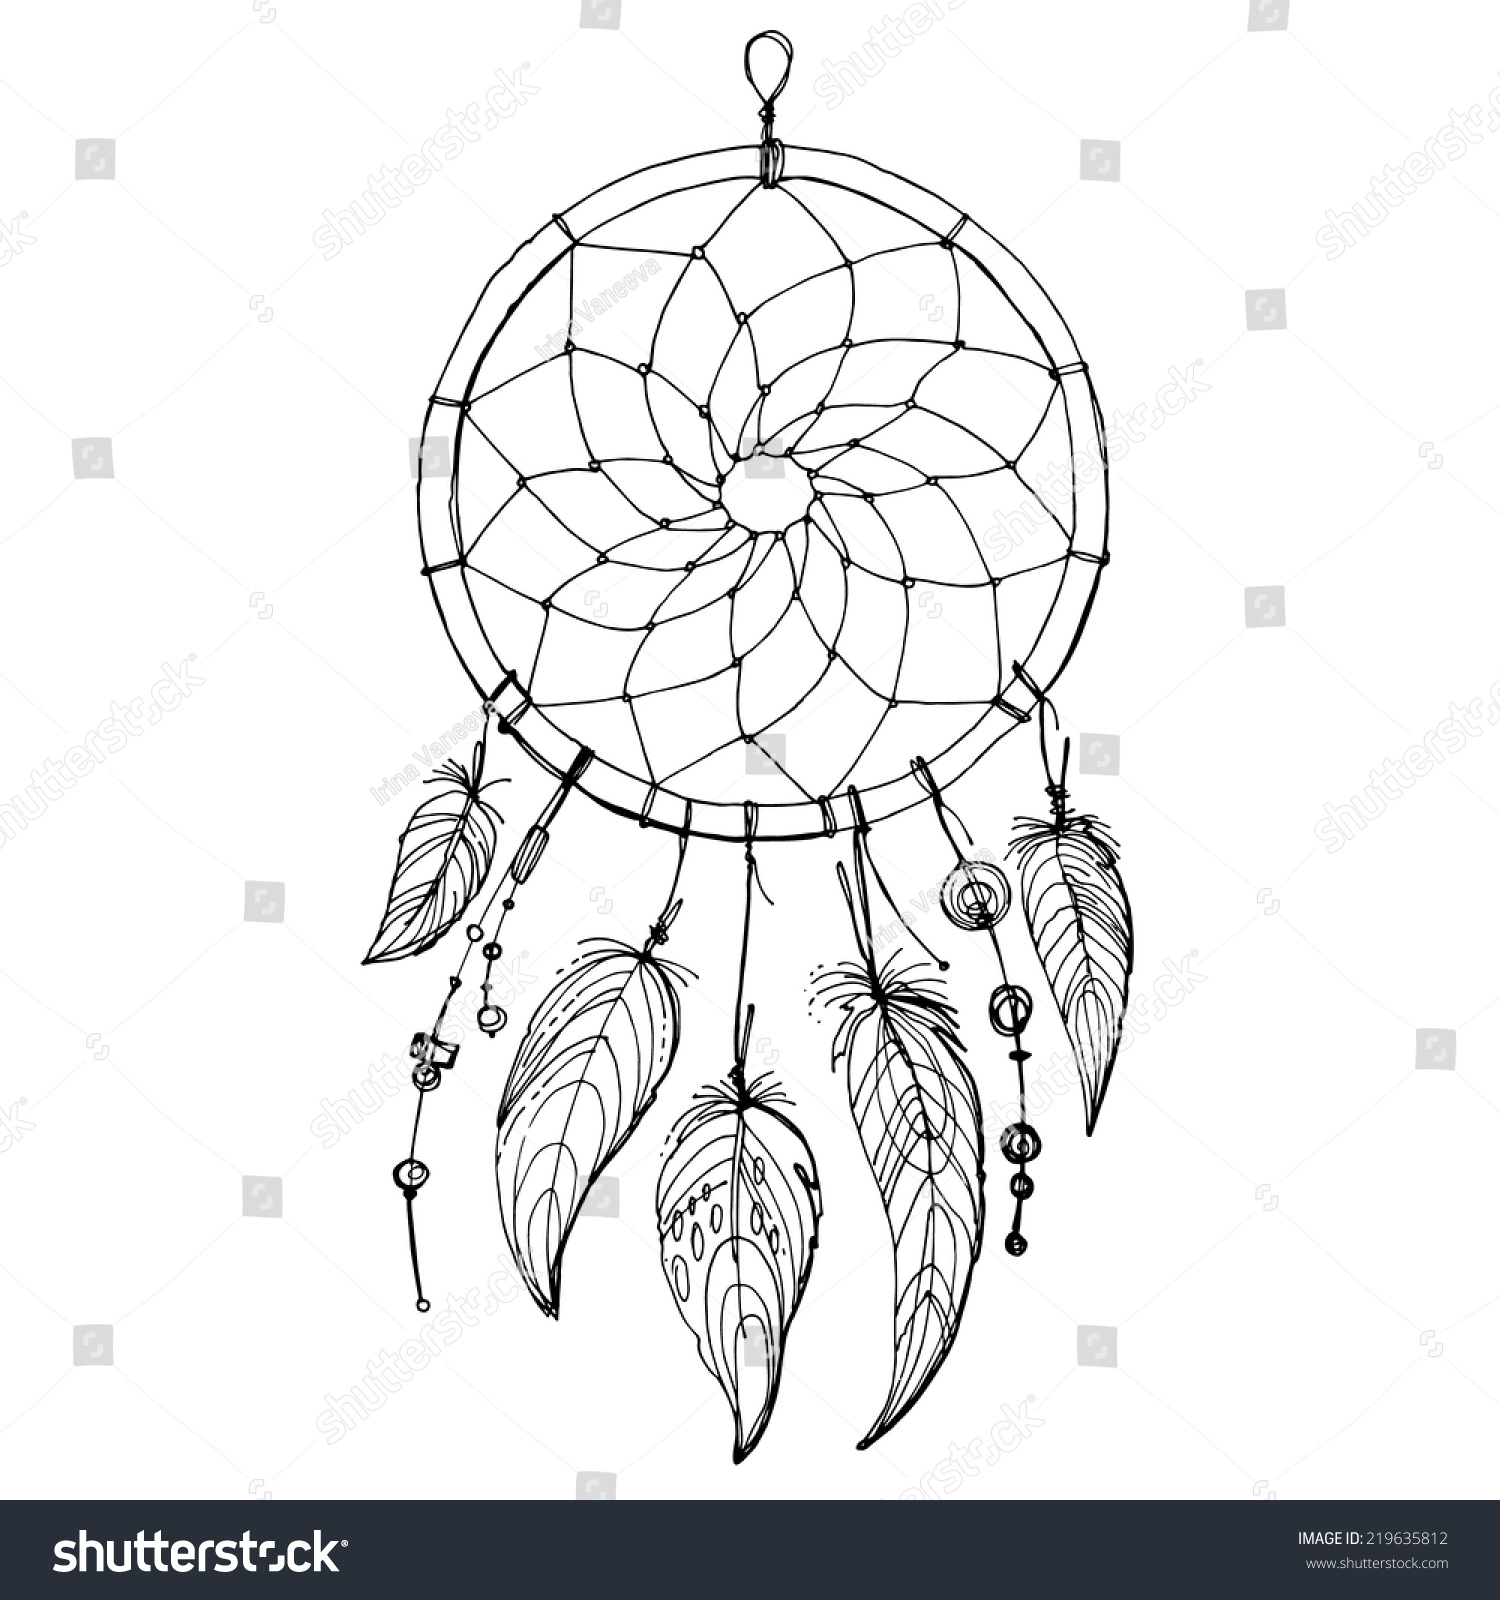 What Is A Dream Catcher Vine Dream Catcher  Dreamcatcher  Wikipedia The Free Encyclopedia